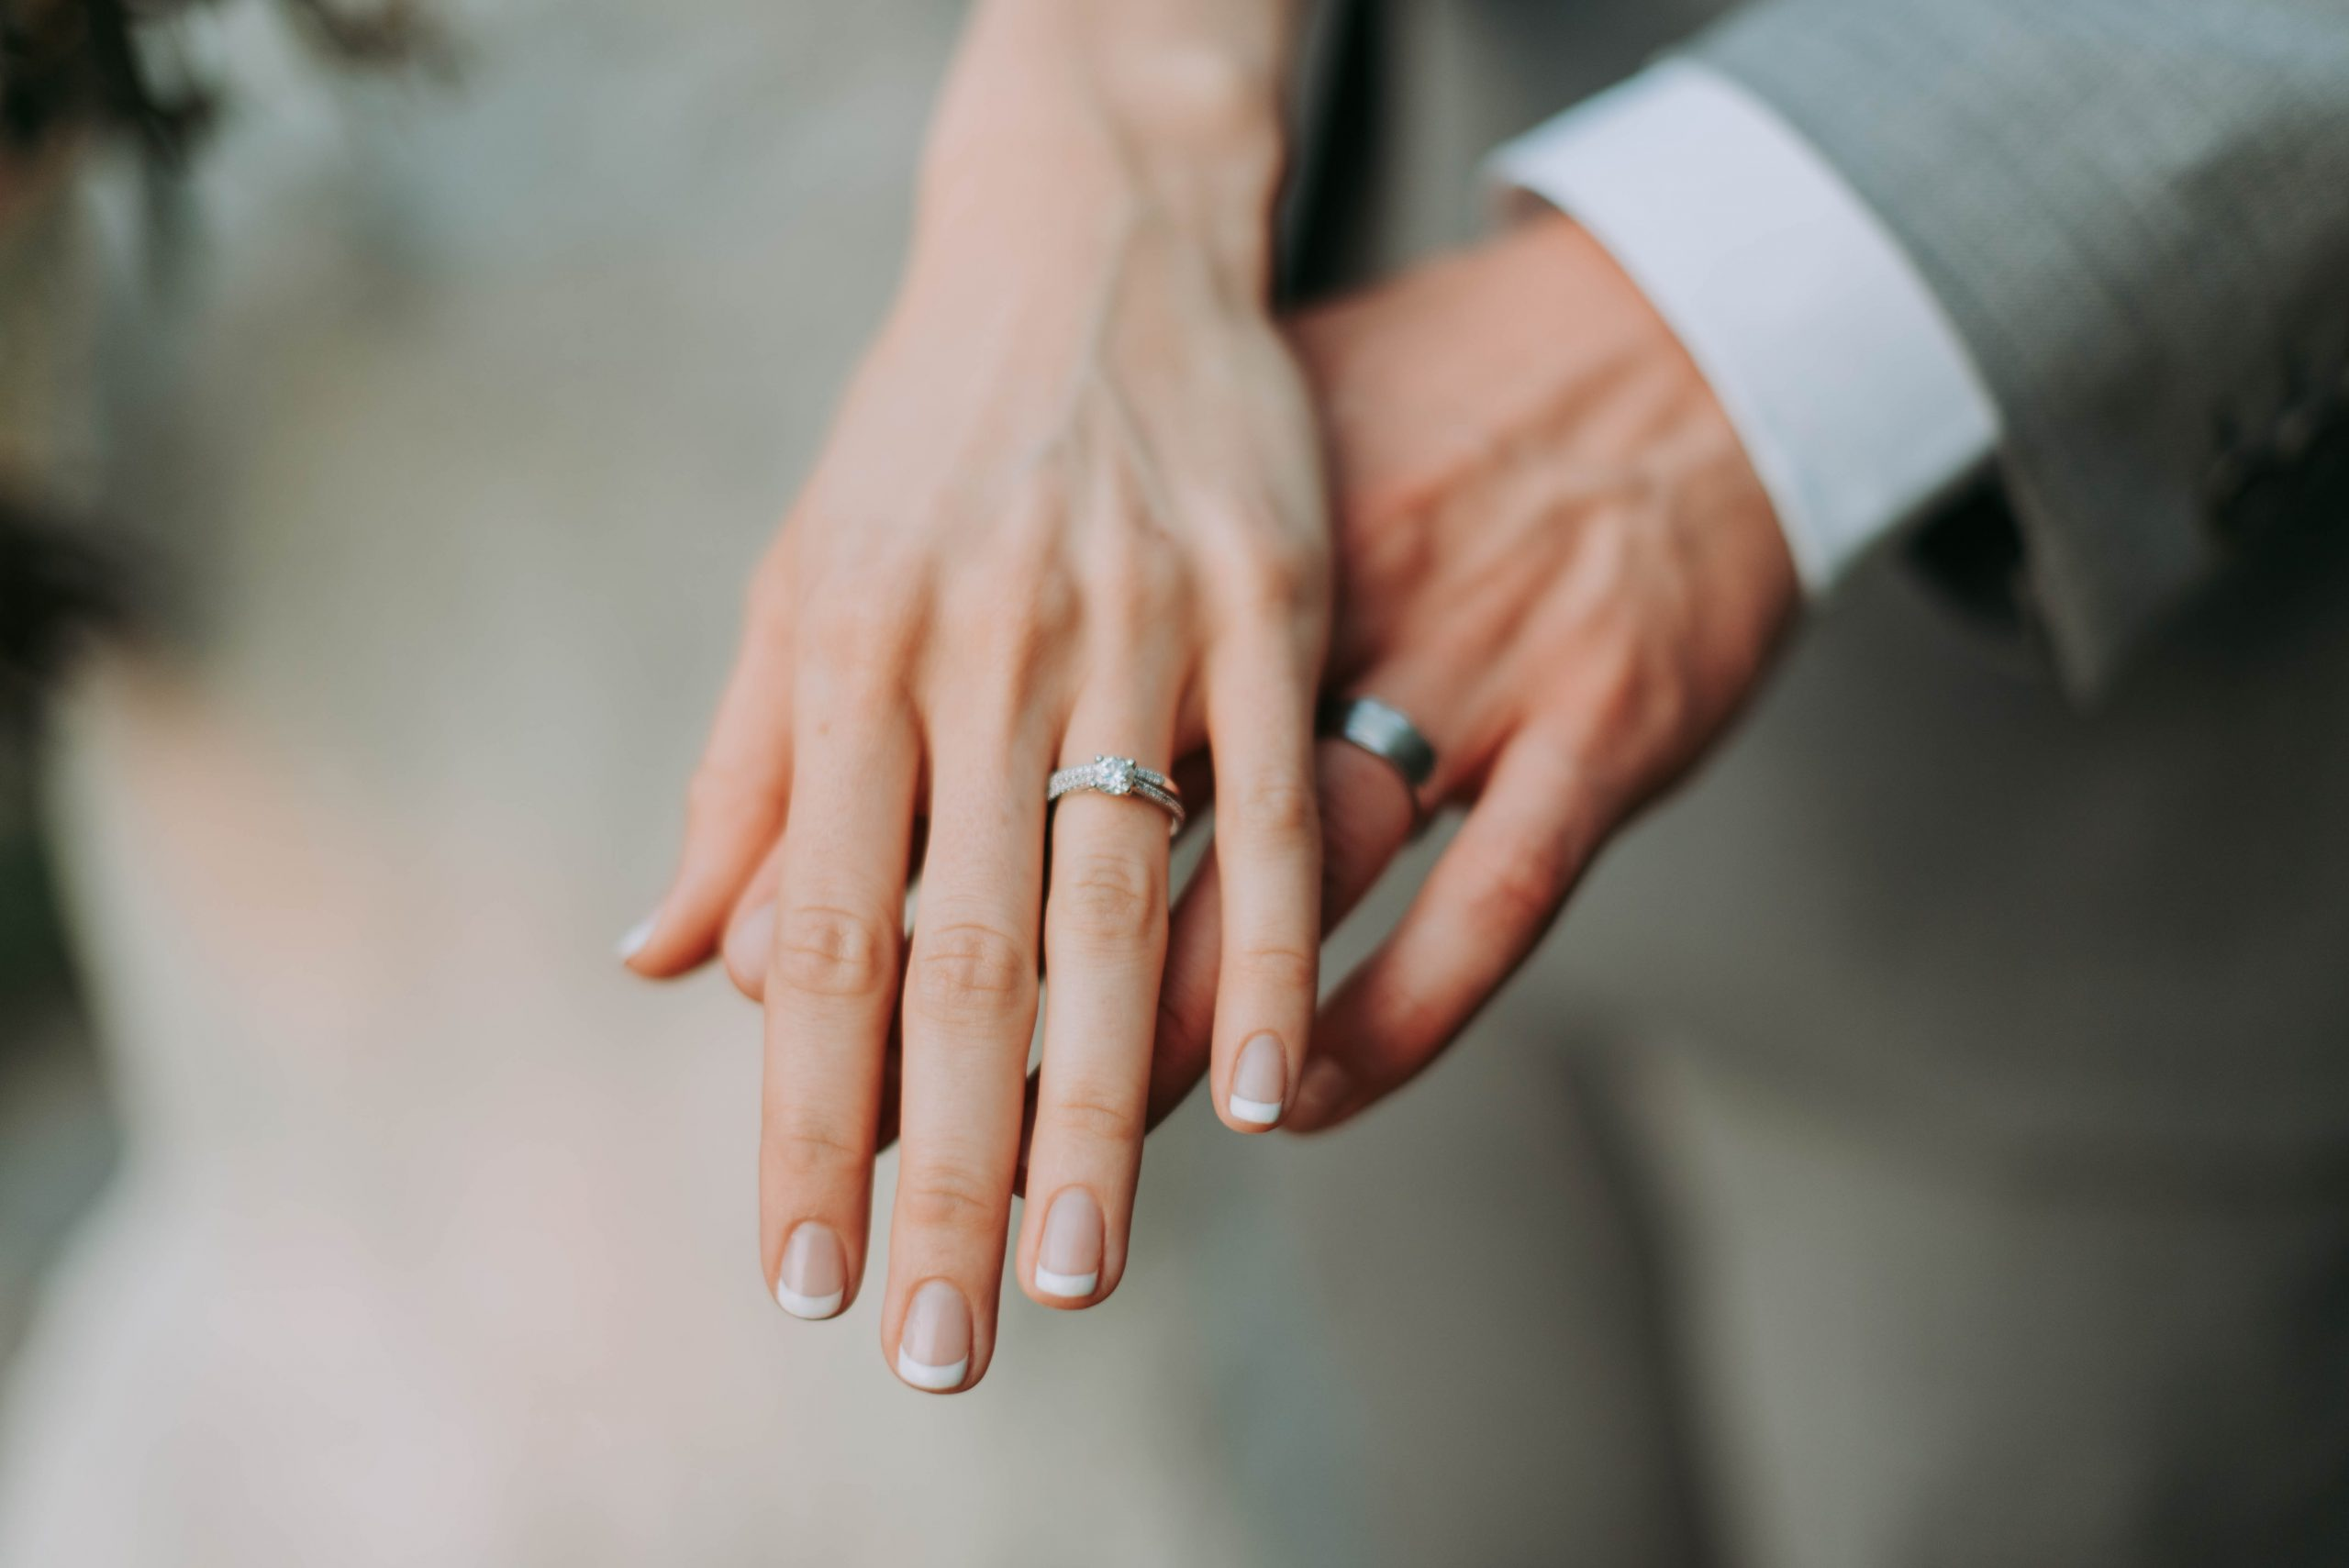 Married couple showing rings